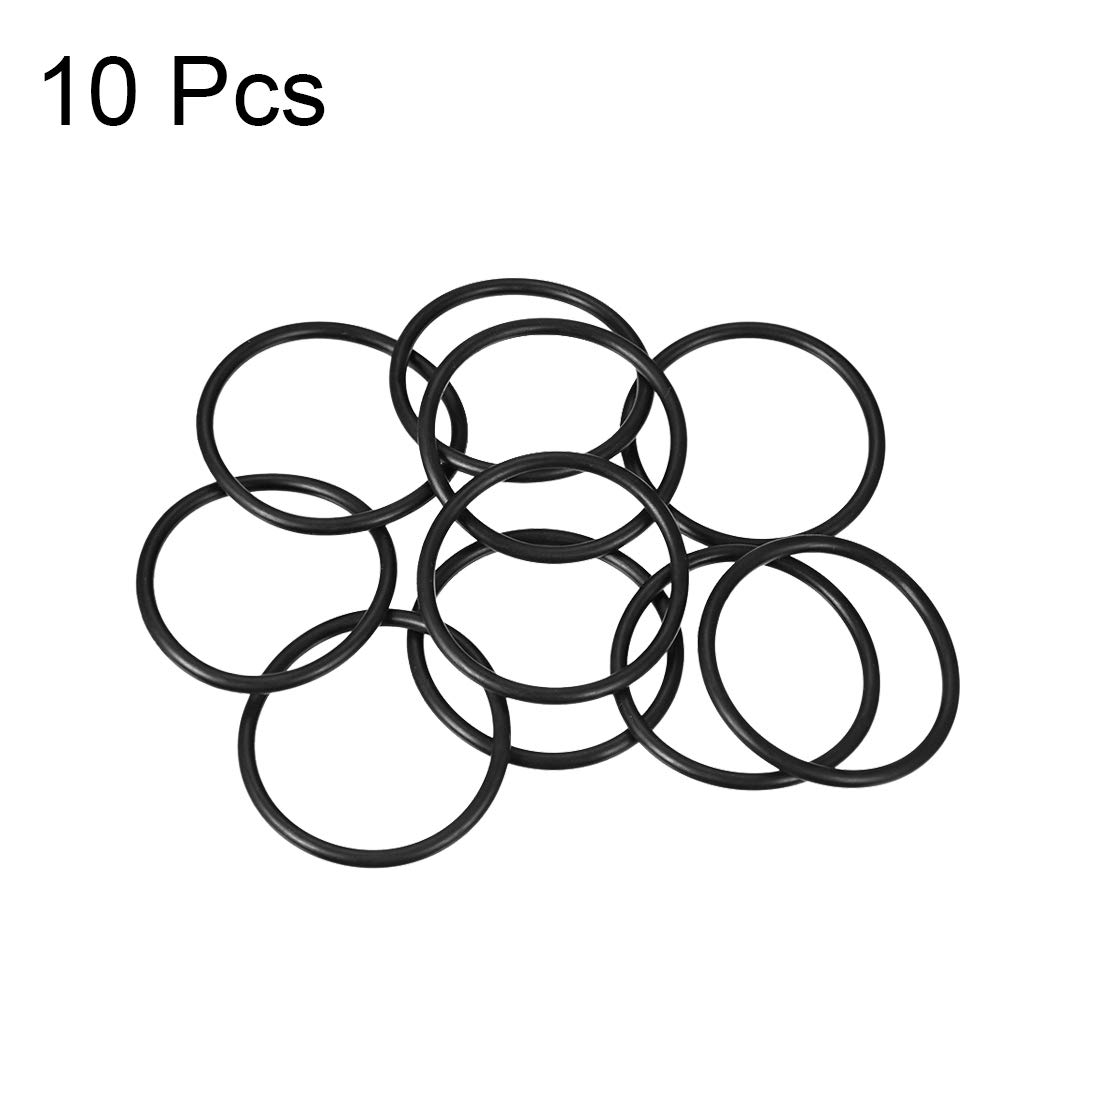 12mm Inner Diameter 17mm OD uxcell O-Rings Nitrile Rubber Round Seal Gasket Pack of 20 2.5mm Width